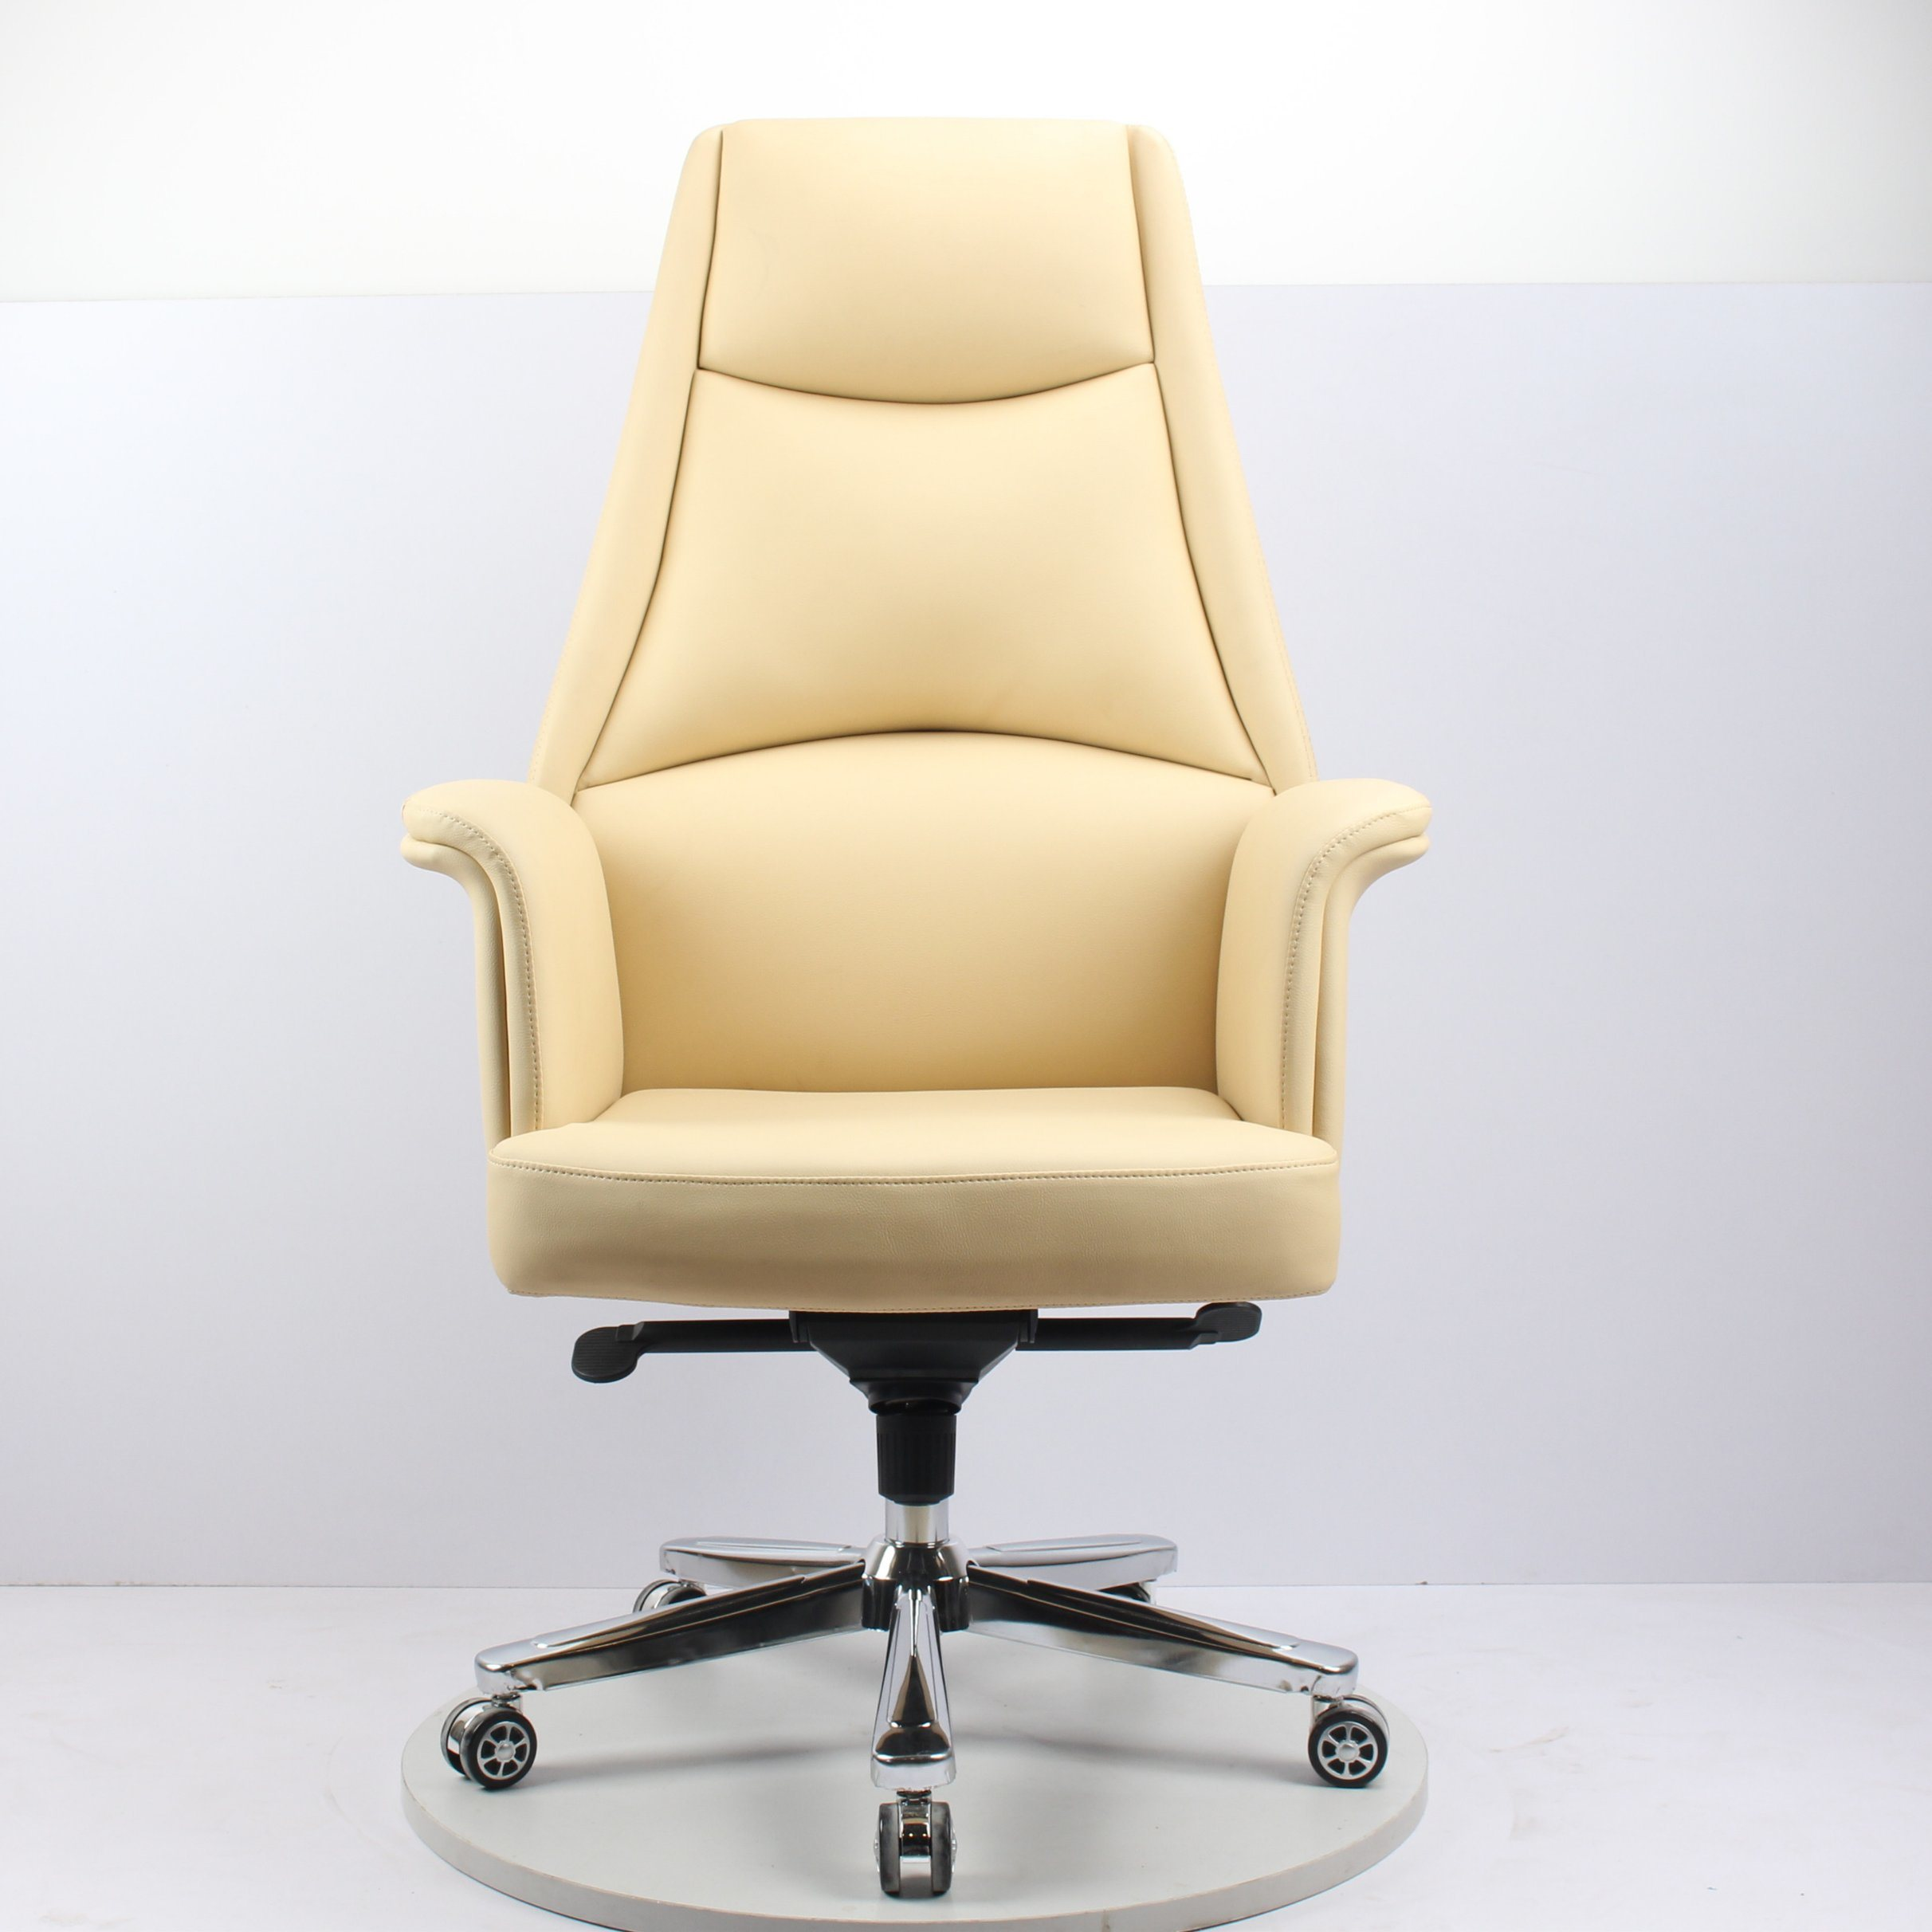 Japanese Chair Hot Item Japanese And European Style Simple High Back Cortex Computer Chair Modern Fashion Class Chair High End Office Chair Large And Medium Class